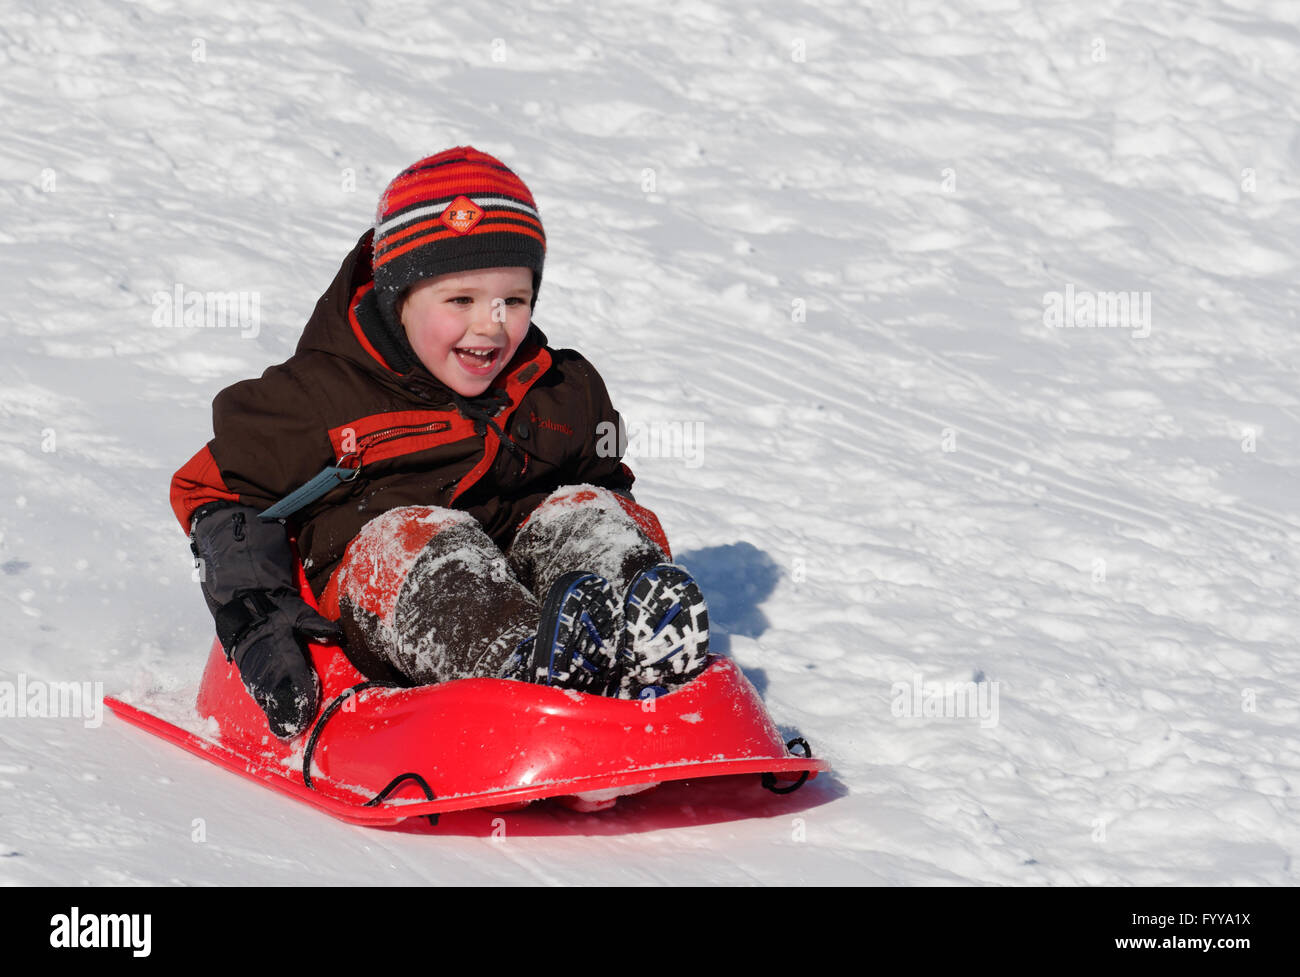 Laughing 4 year old boy in a sledge - Stock Image